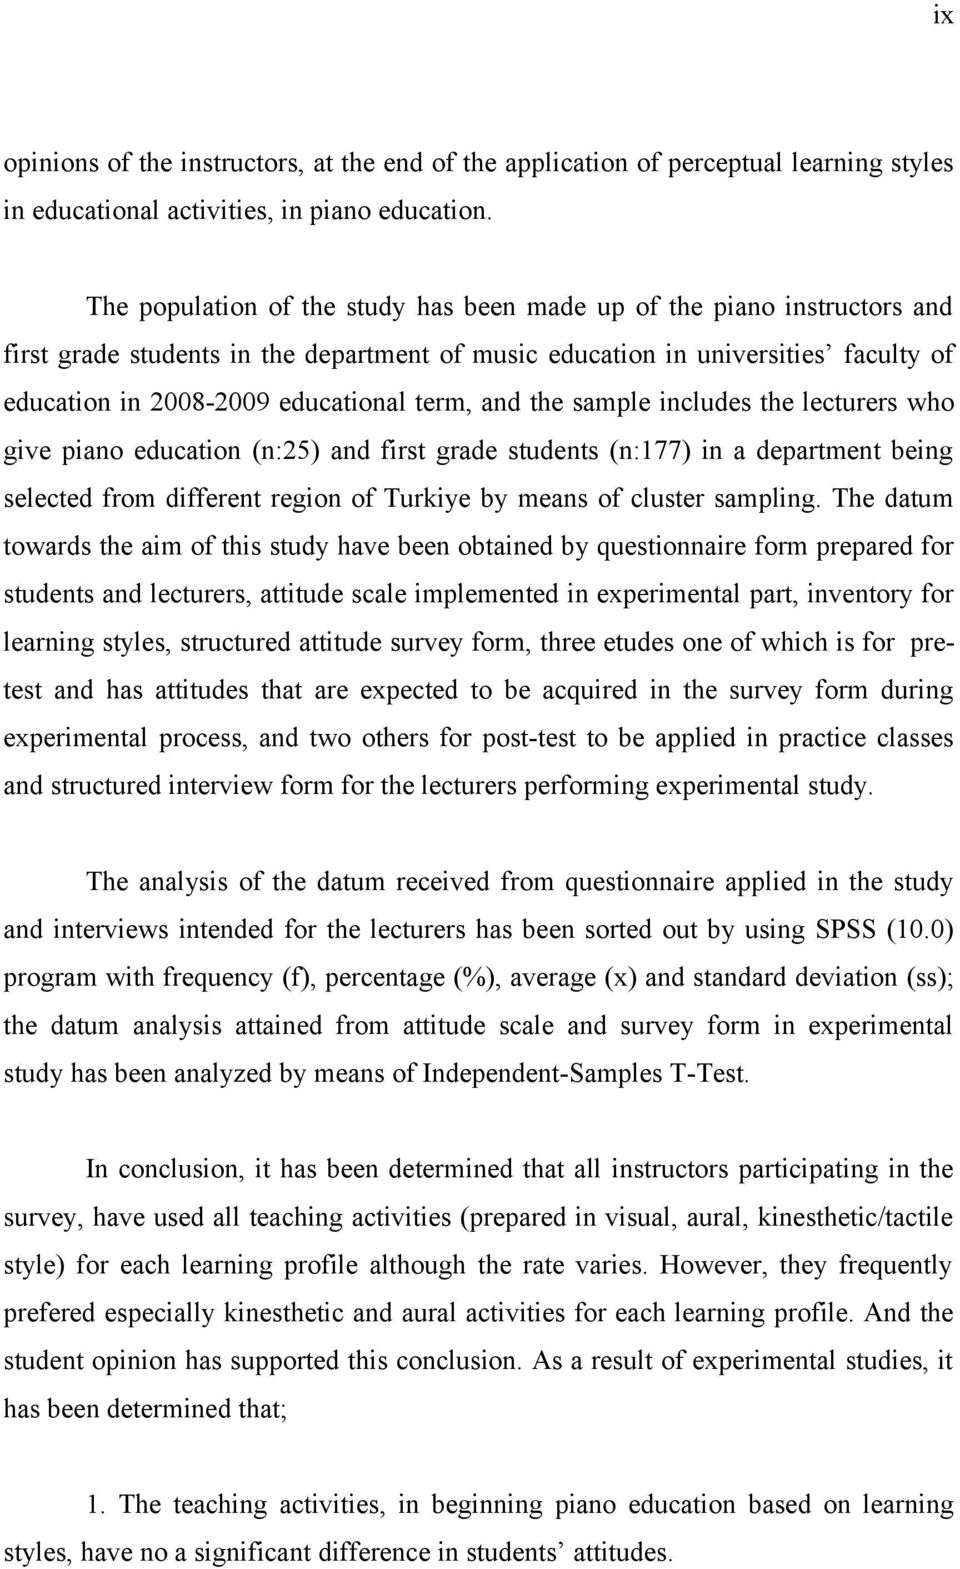 and the sample includes the lecturers who give piano education (n:25) and first grade students (n:177) in a department being selected from different region of Turkiye by means of cluster sampling.